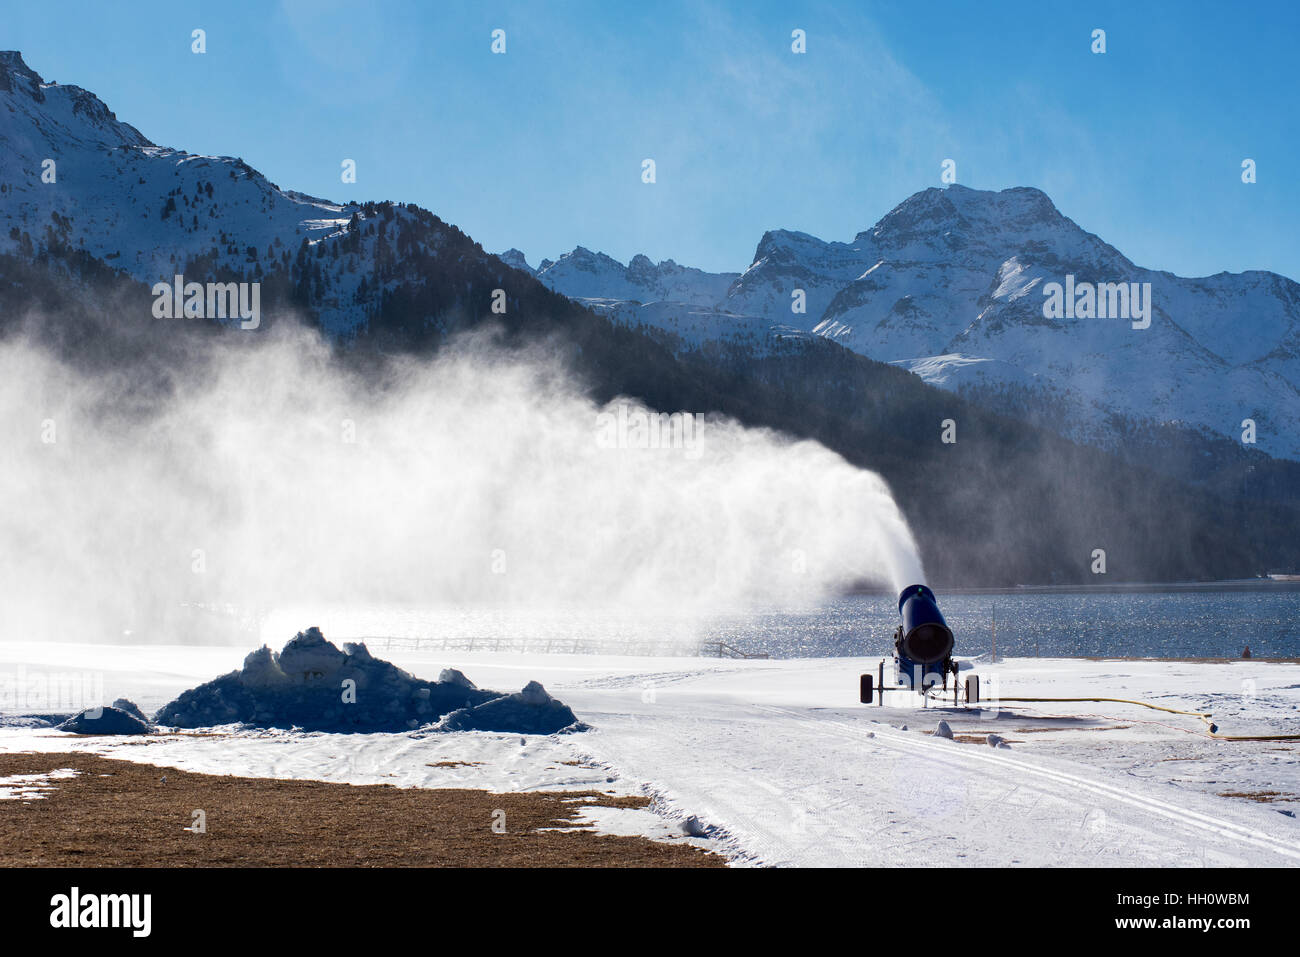 Snow canon or gun blowing artificial snow onto a piste or run at a mountain ski resort when the weather has been - Stock Image